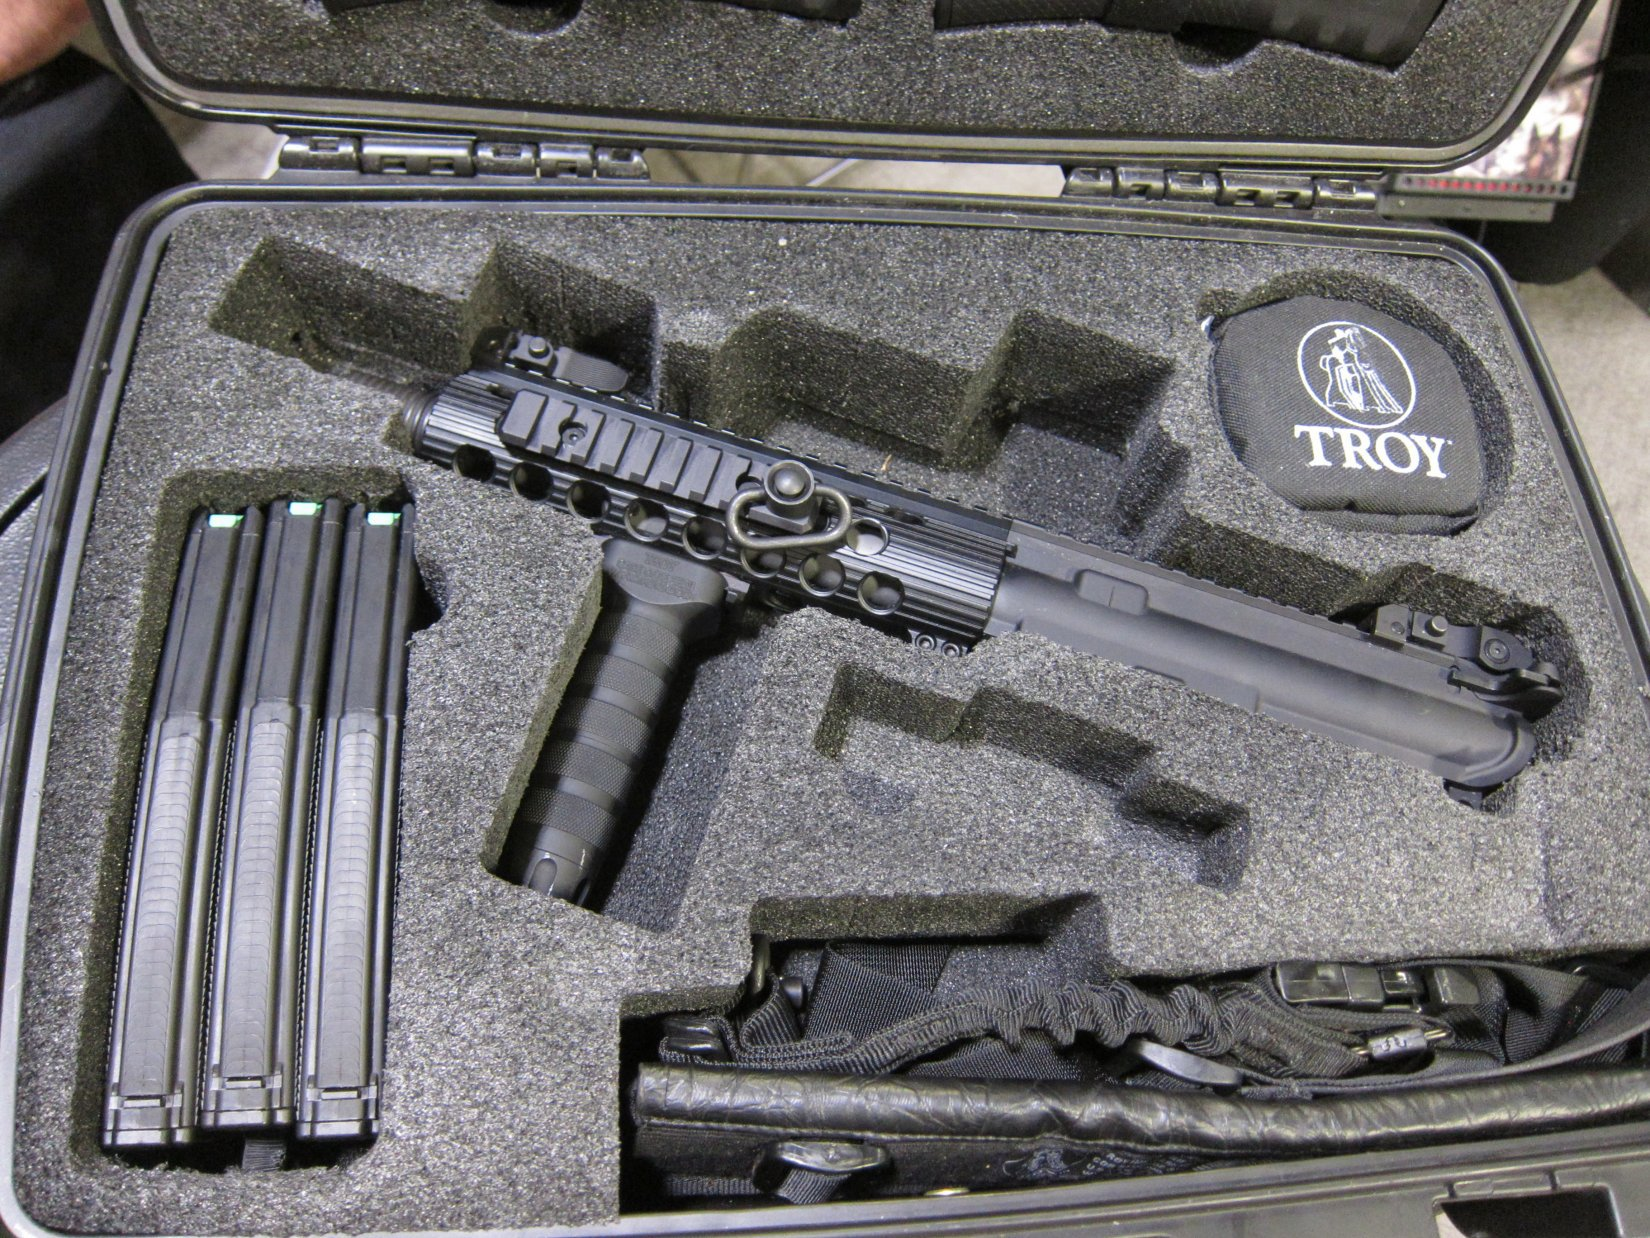 Troy Industries M7 Tactical AR 15 SBR Upper Receiver Lower Receiver Upgrade Kit SOFIC 2012 DefenseReview.com DR 2 Troy Industries M7 Upper Receiver/Lower Receiver Upgrade Kit for Tactical AR 15 Carbine Lowers (Video!)